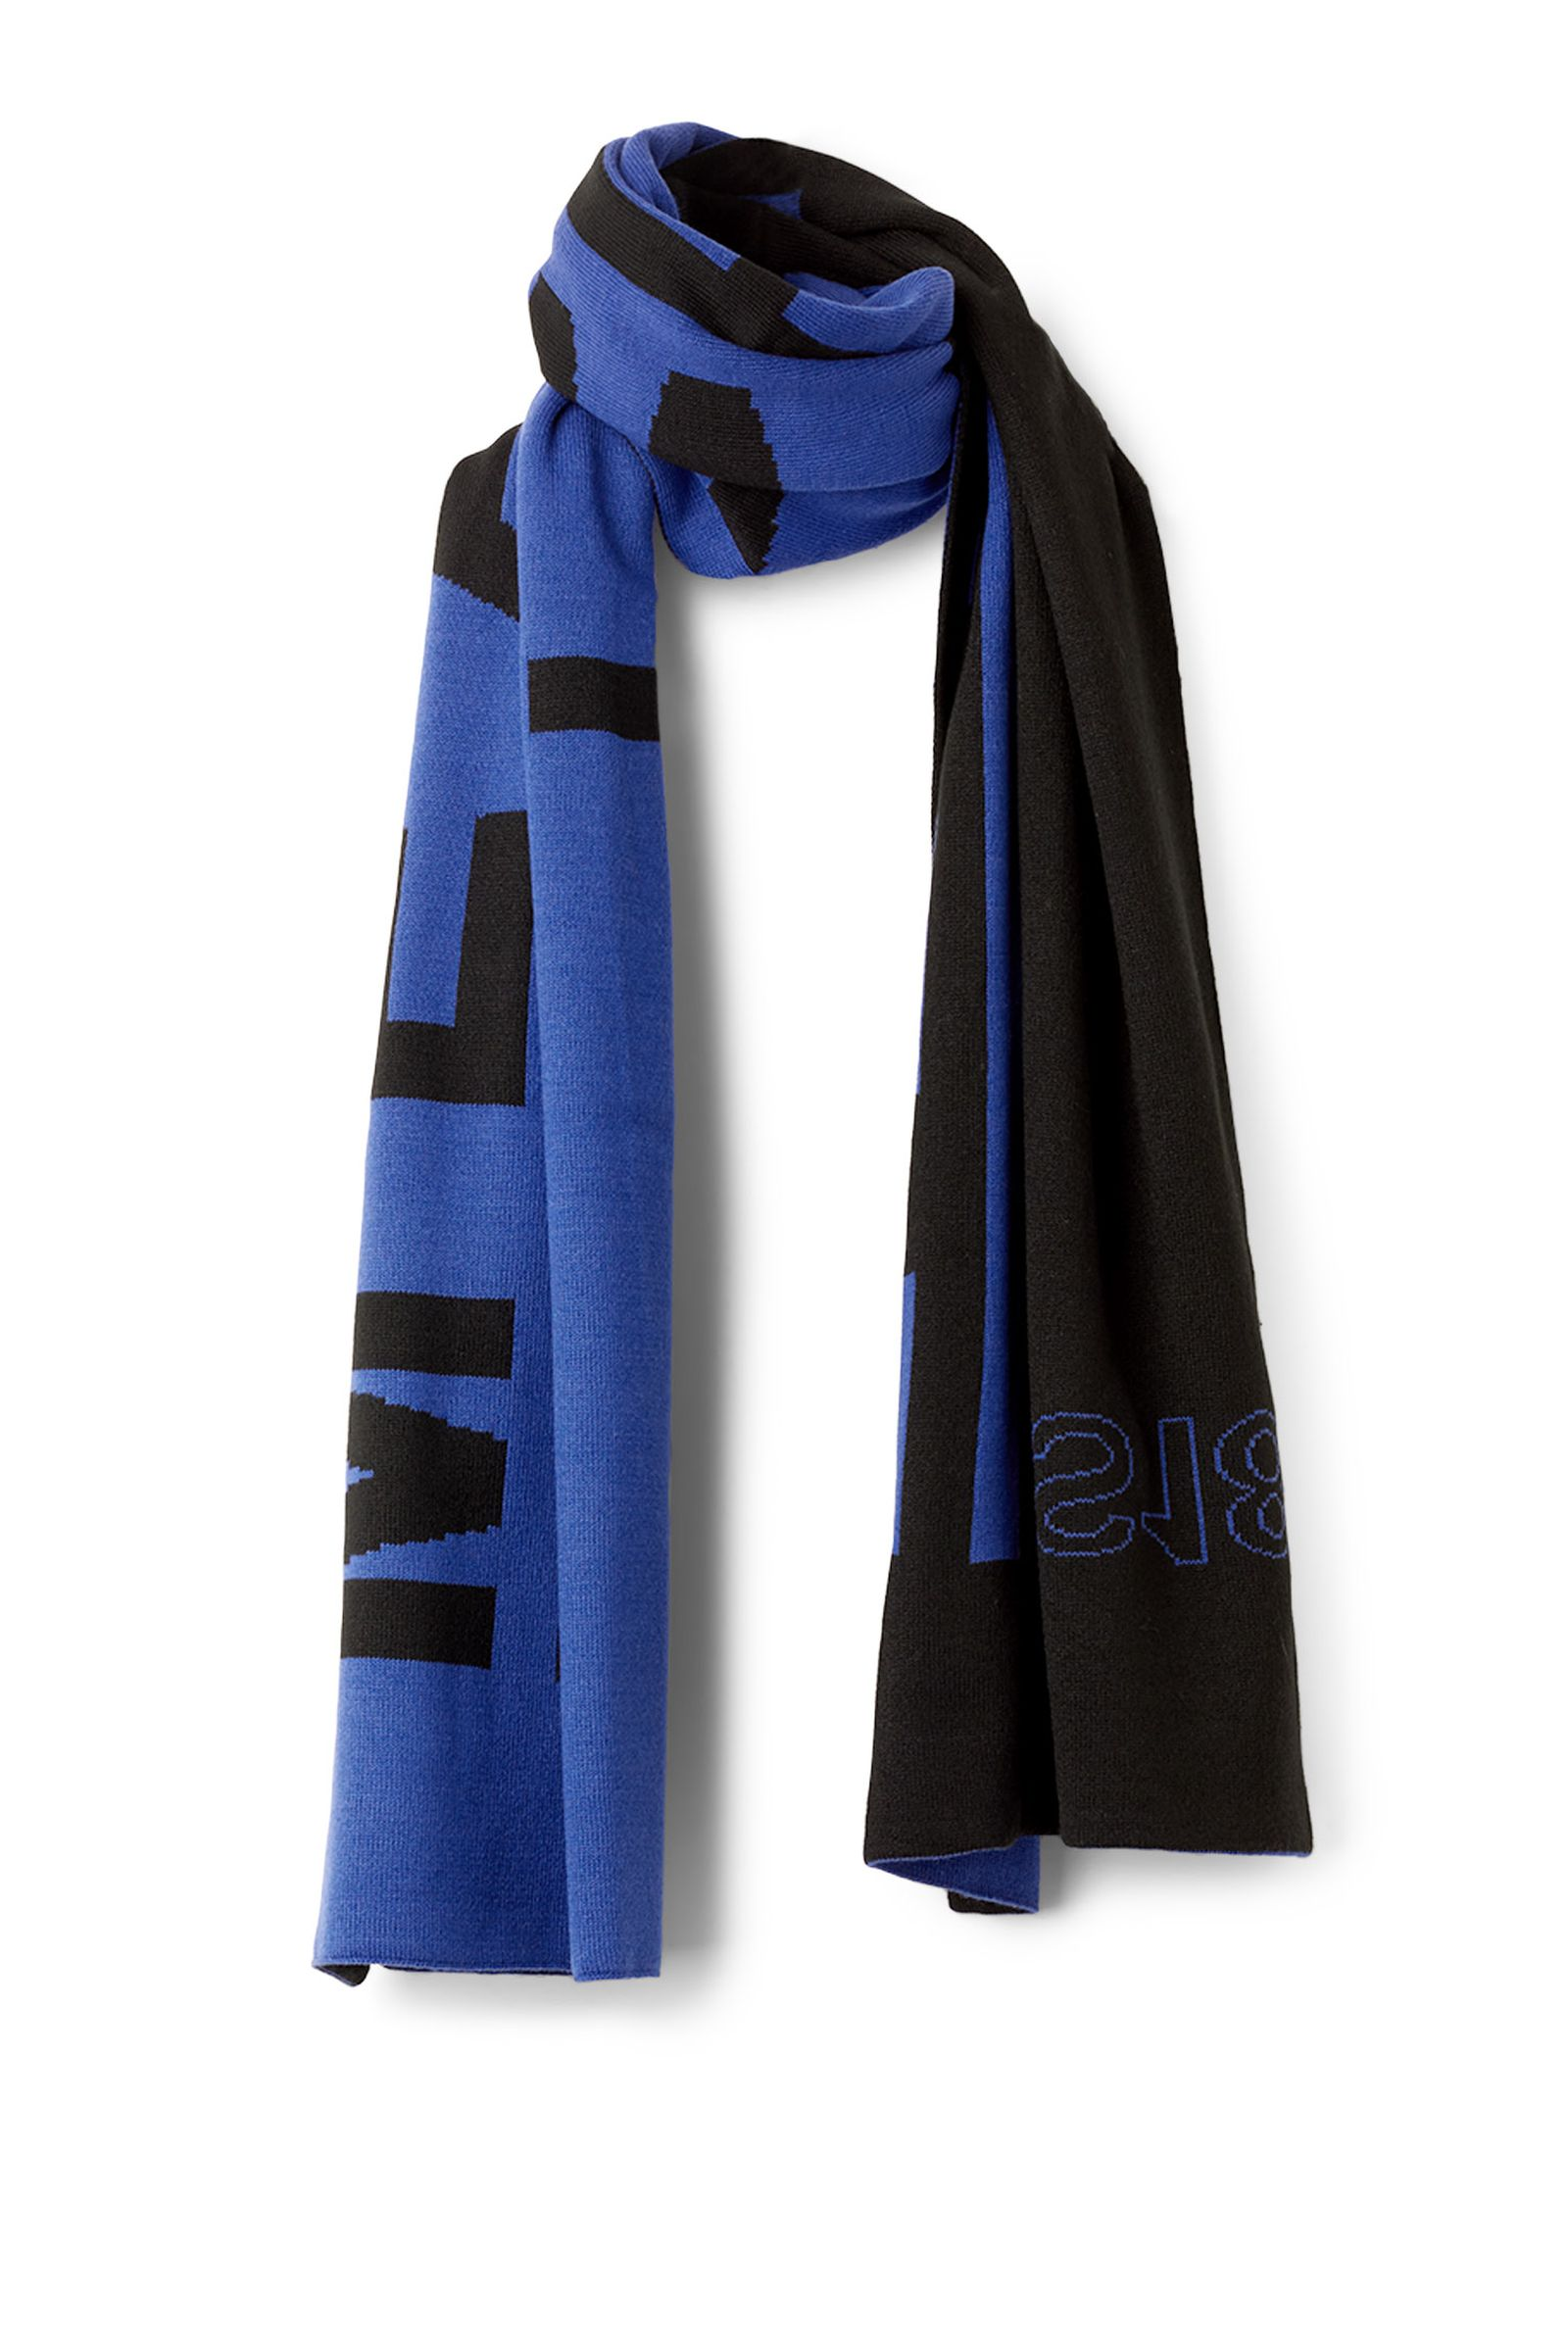 weekday-winter-2017-collection-meridian-scarf-05